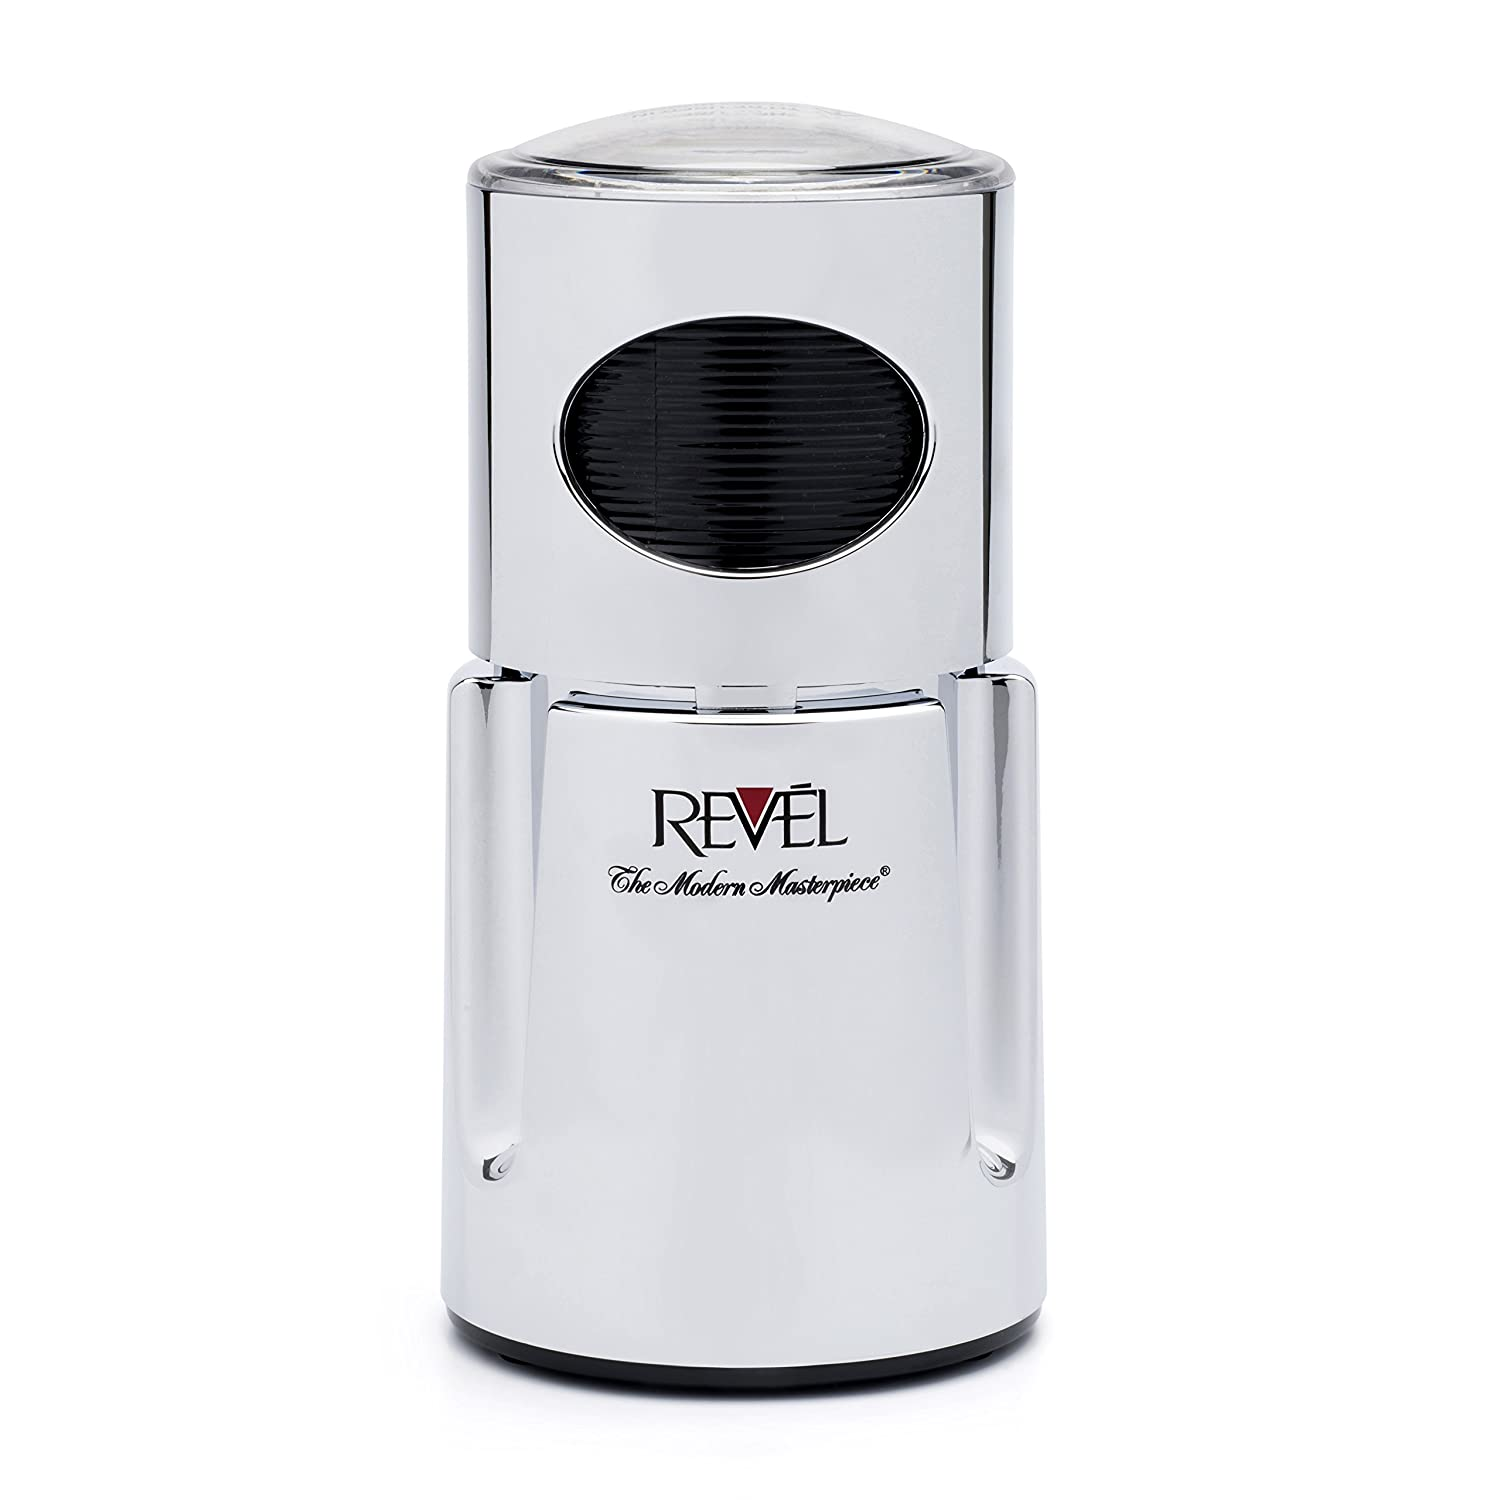 Revel CCM104CH Chrome Wet and Dry Coffee Spice Grinder, 220 Volts (Not for USA - European Cord) Gandhi - Appliances